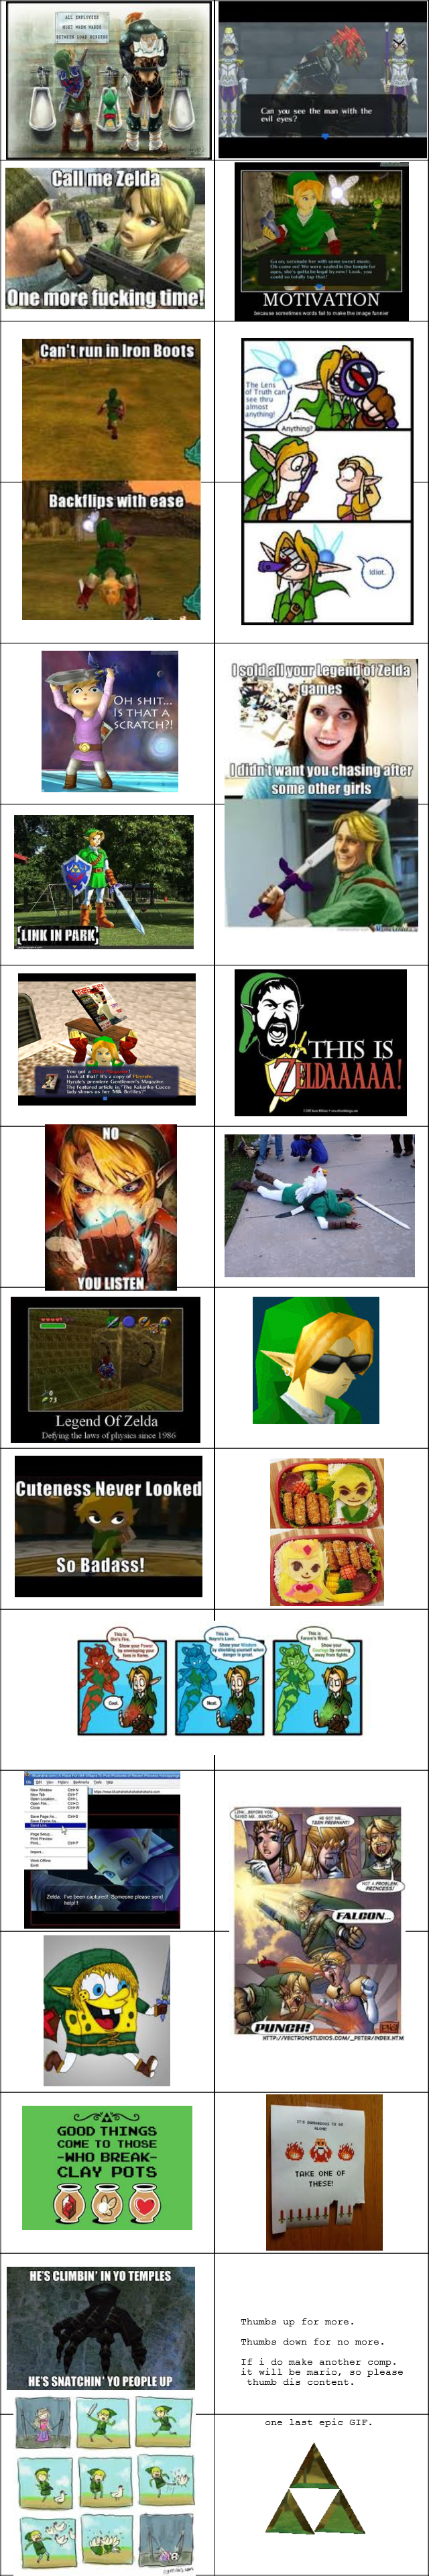 """The Legend of Zelda comp.. .. I lost it at """"snatchin yo people up"""" XD"""